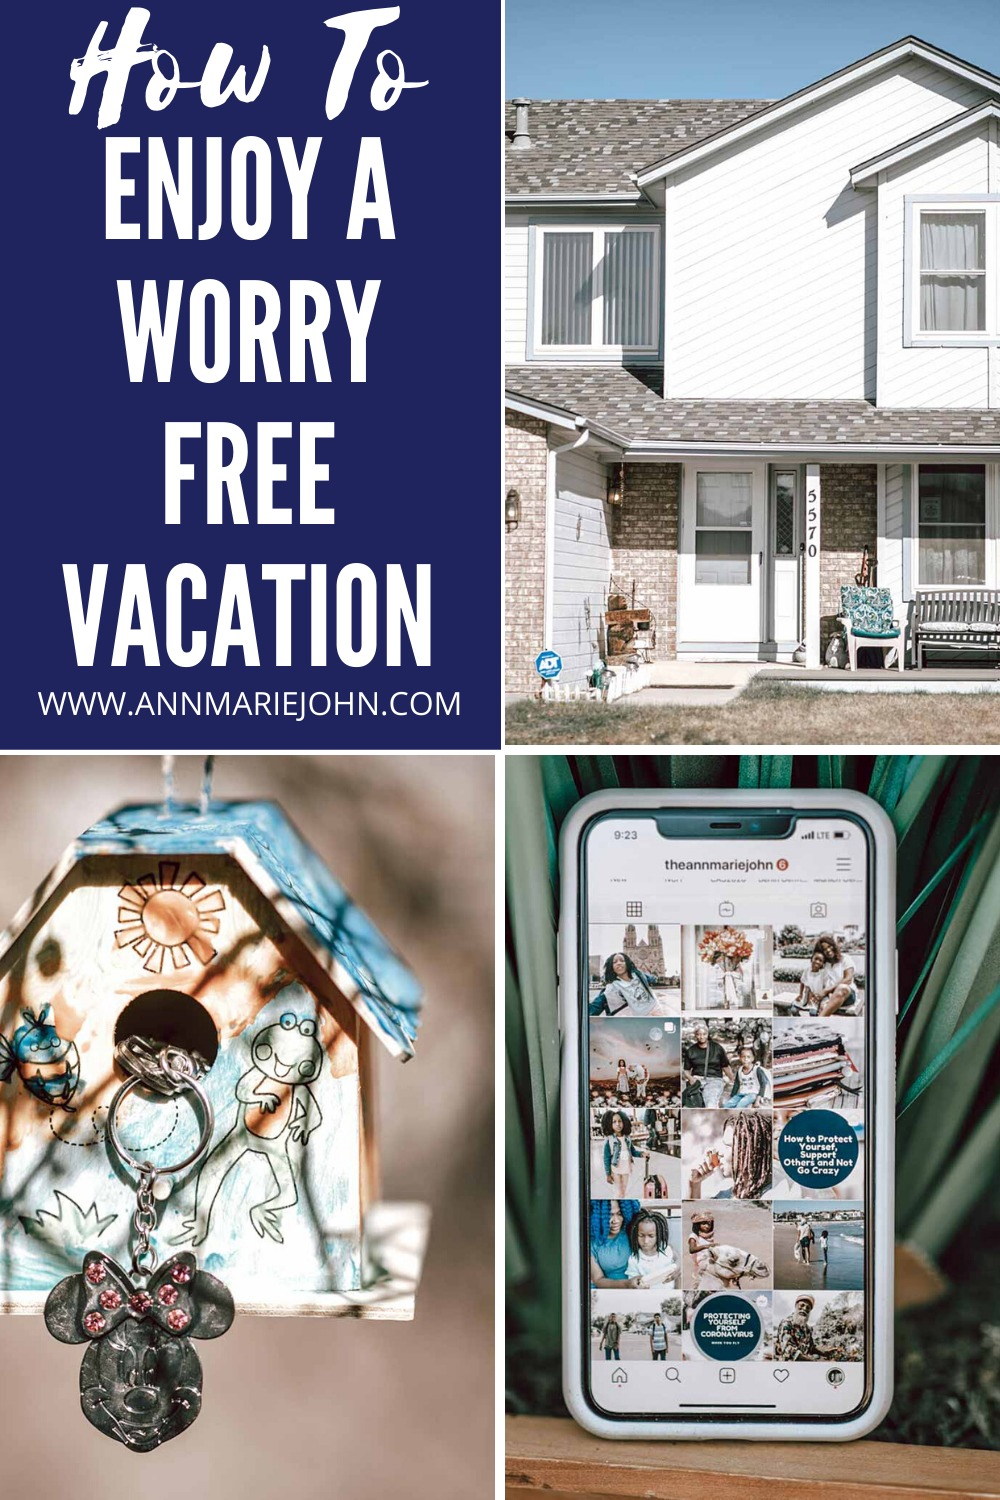 Enjoy a Worry-Free Vacation